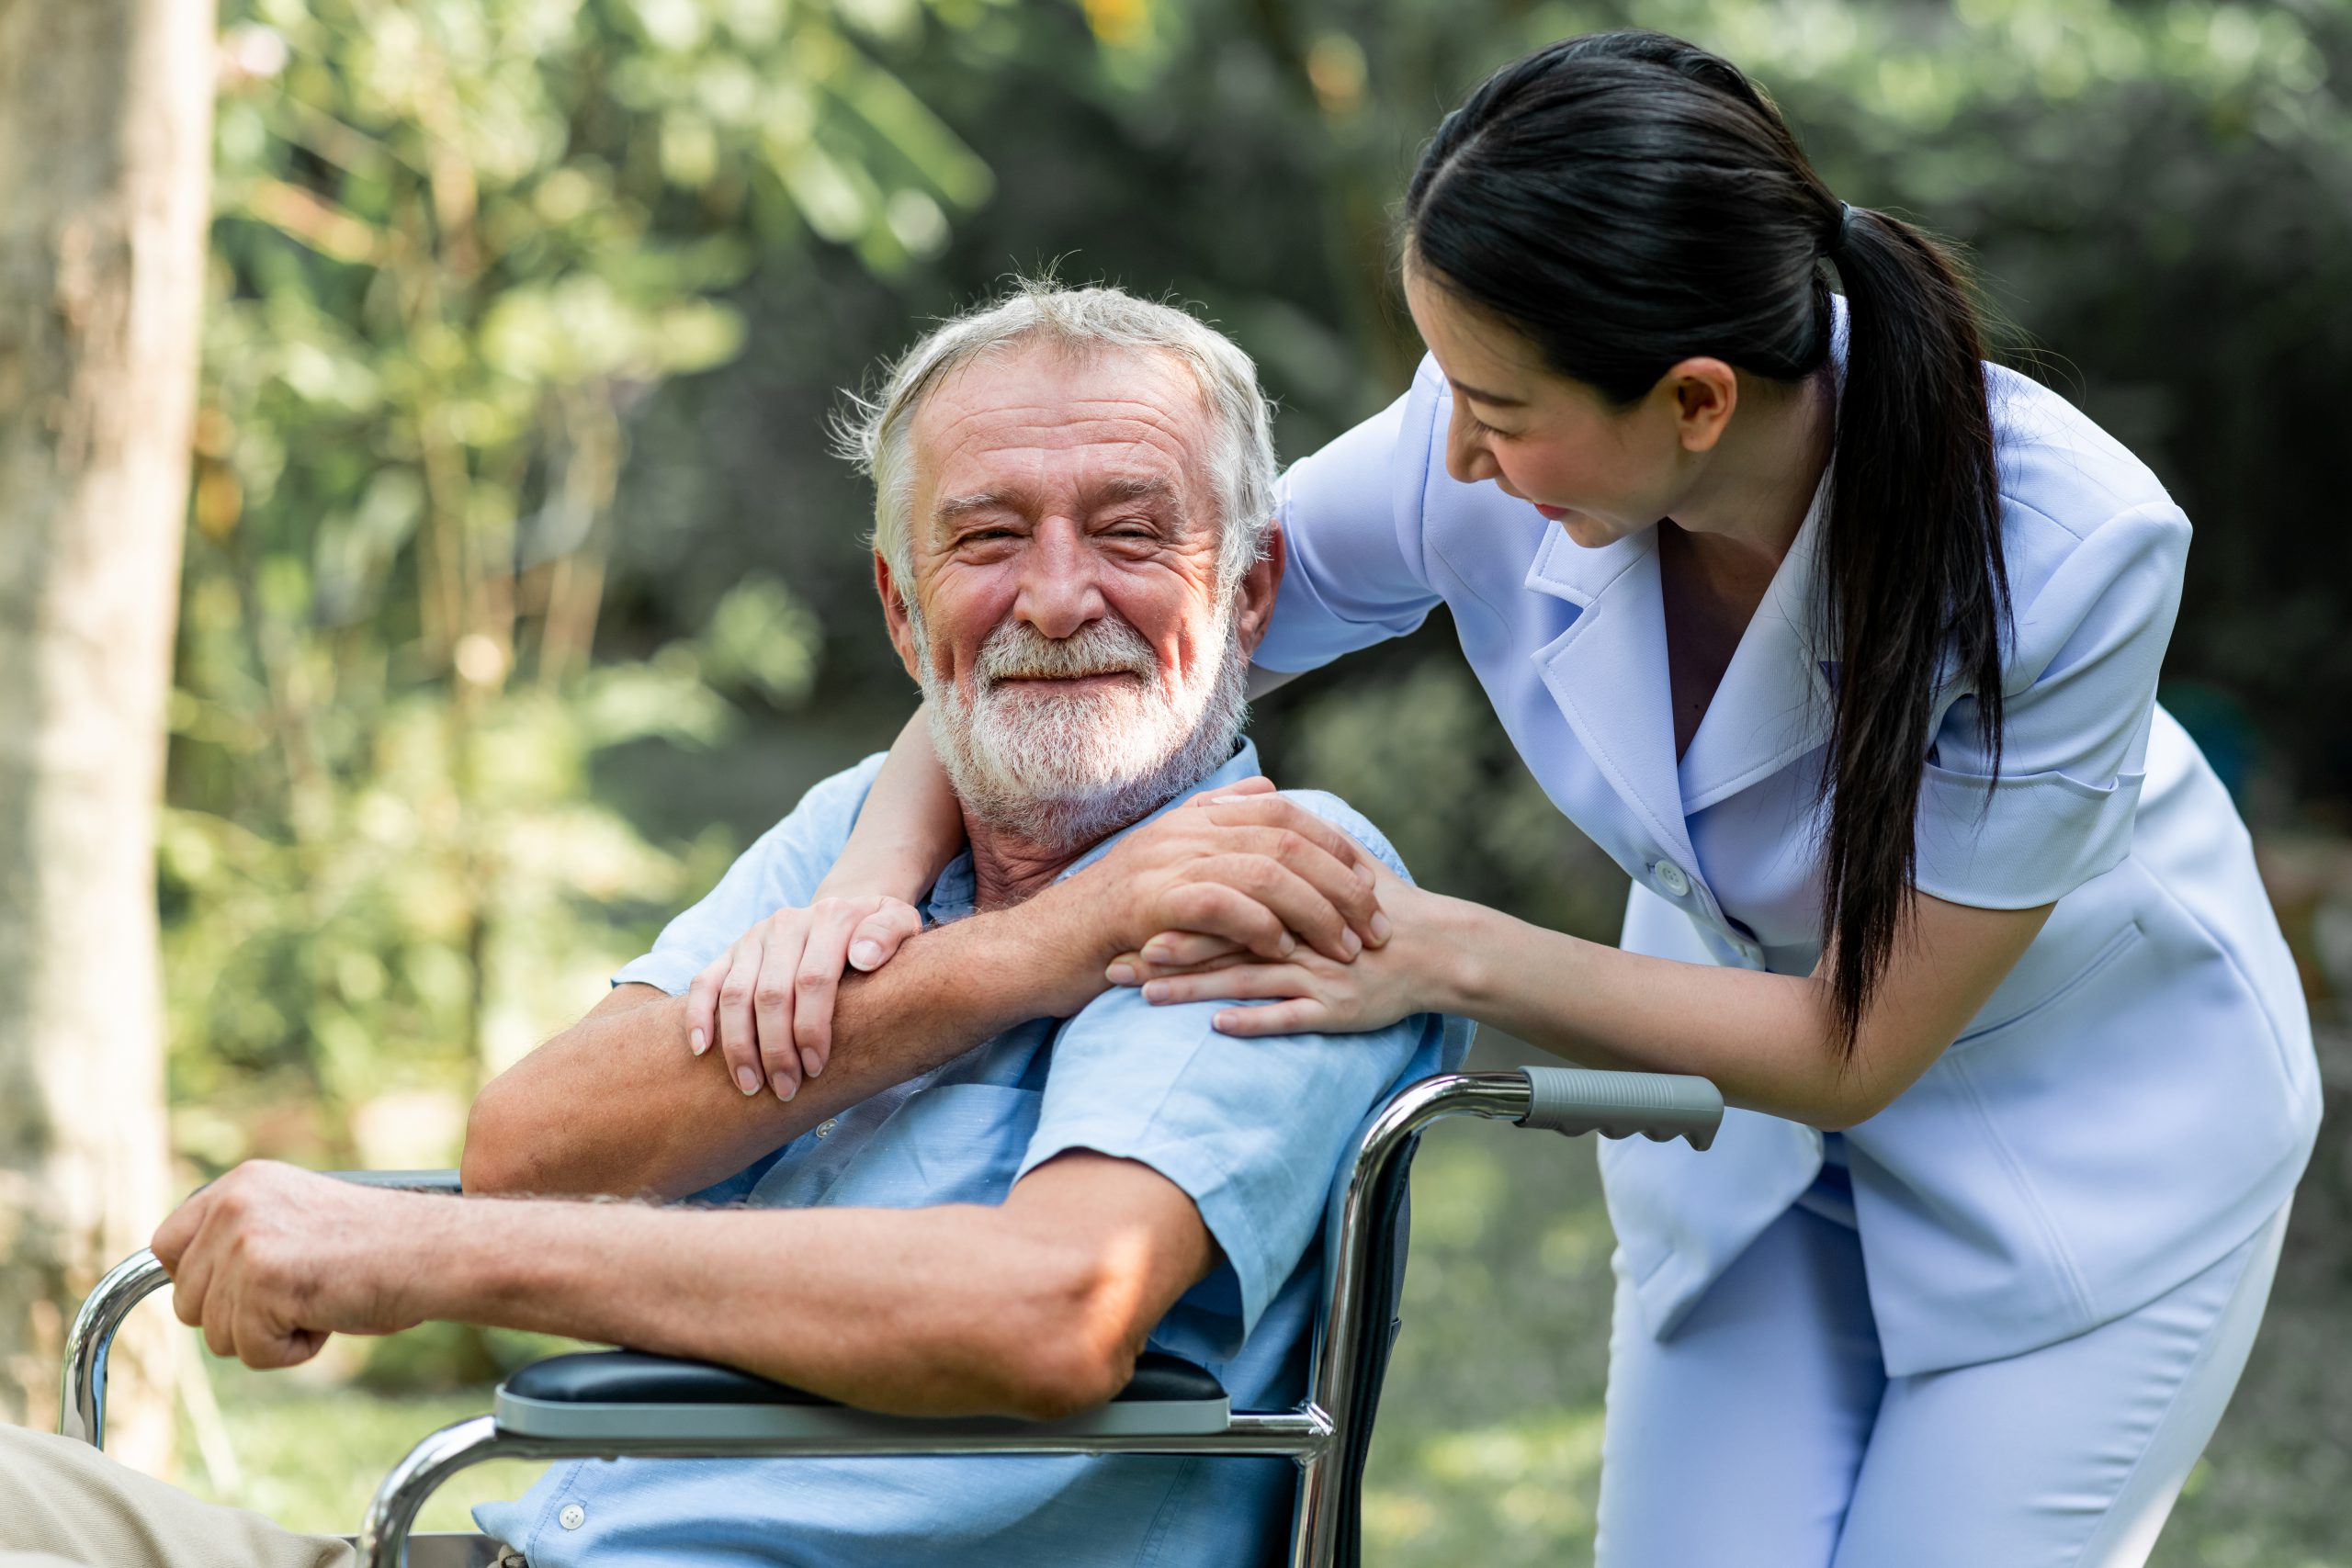 a healthcare worker comforts an older patient